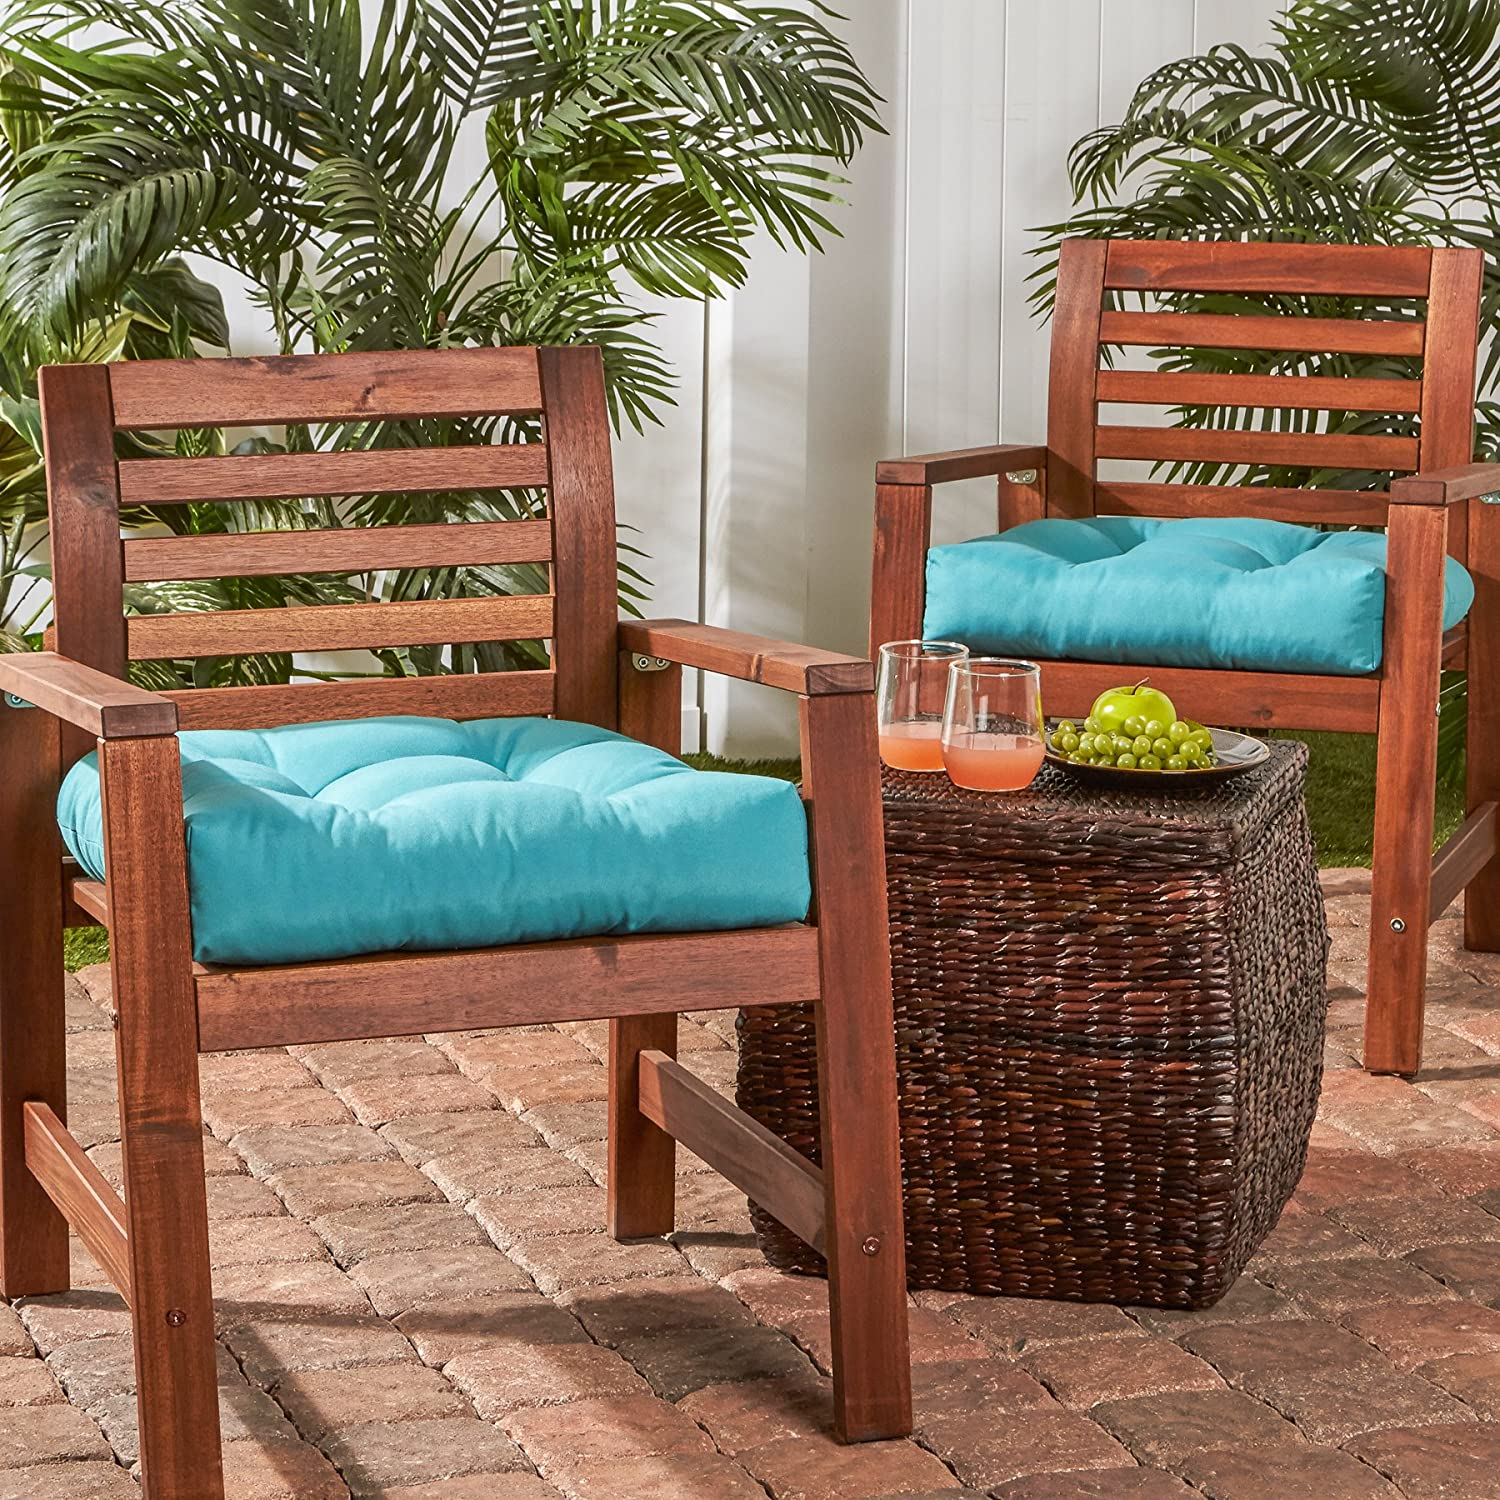 Greendale Home Fashions 20-inch Outdoor Chair Cushion set of 2 , Teal